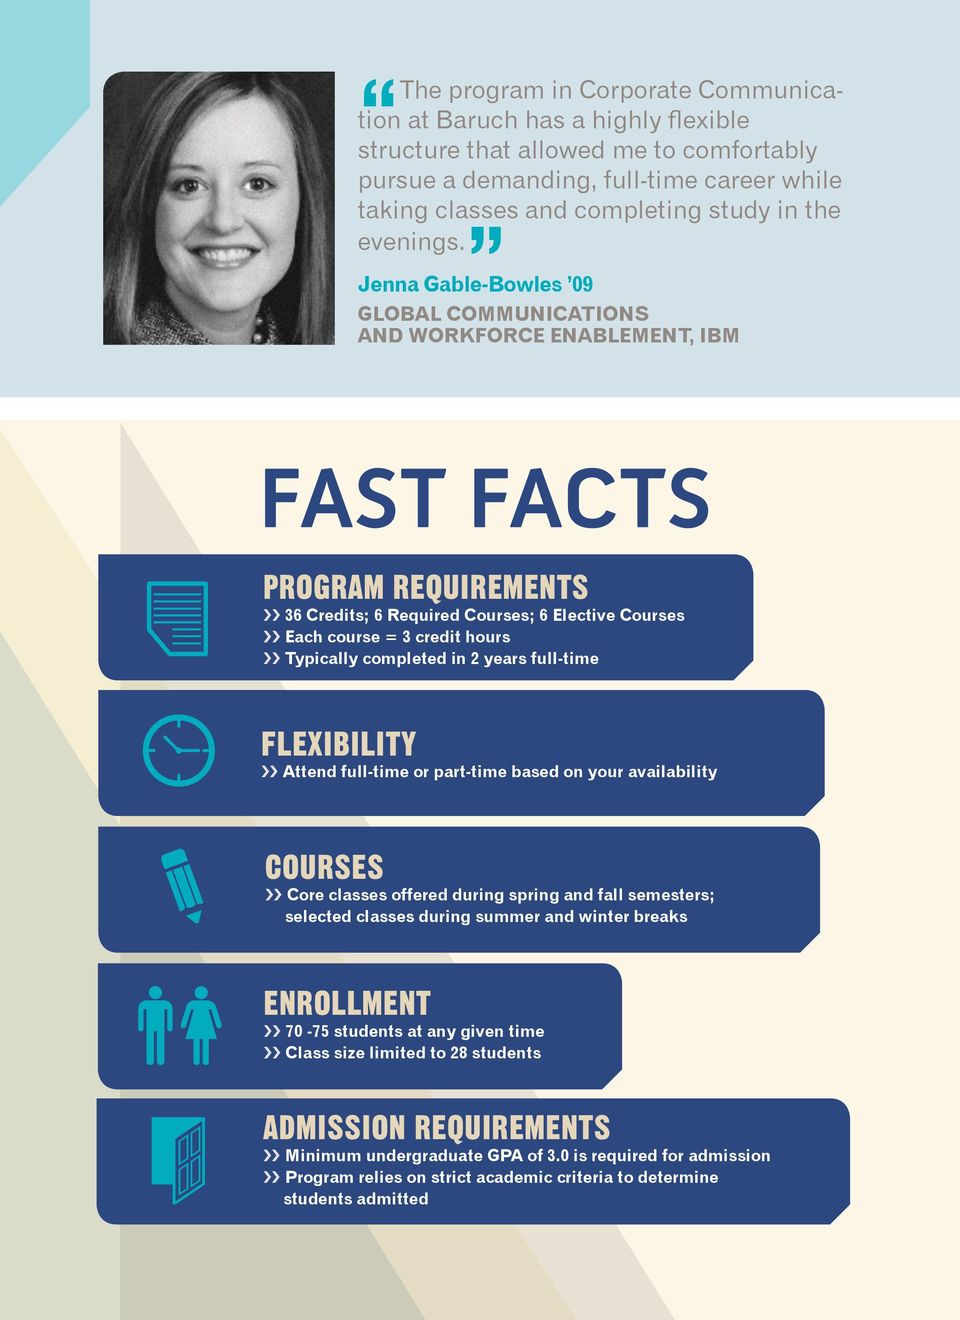 Jenna Gable-Bowles 09 GLOBAL COMMUNICATIONS AND WORKFORCE ENABLEMENT, IBM FAST FACTS PROGRAM REQUIREMENTS 36 Credits; 6 Required Courses; 6 Elective Courses Each course = 3 credit hours Typically